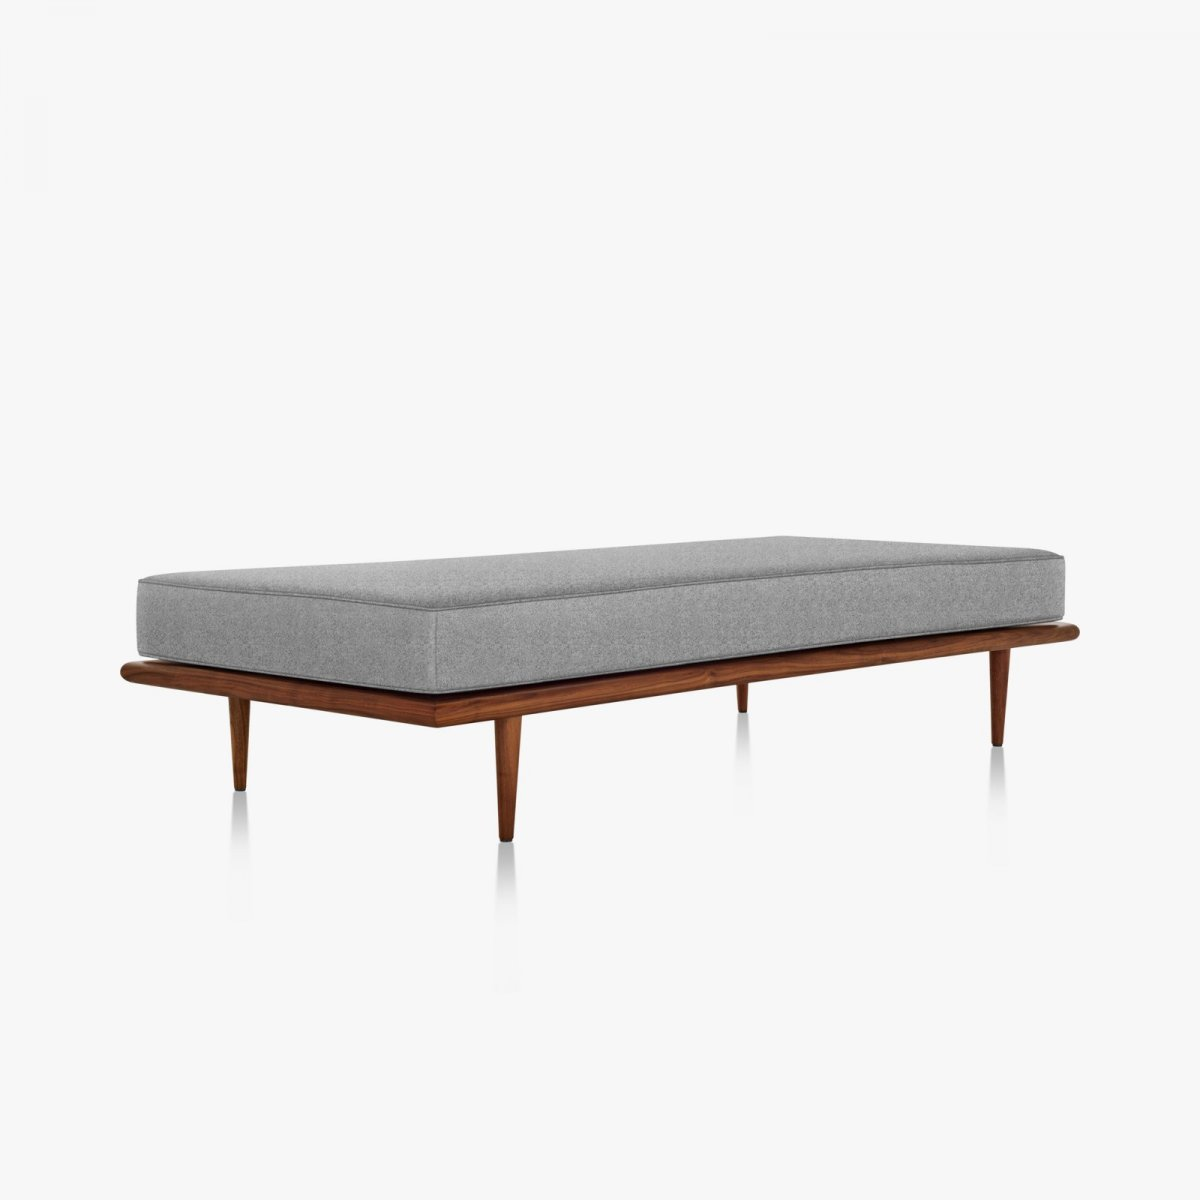 Nelson Daybed with wood taper legs.